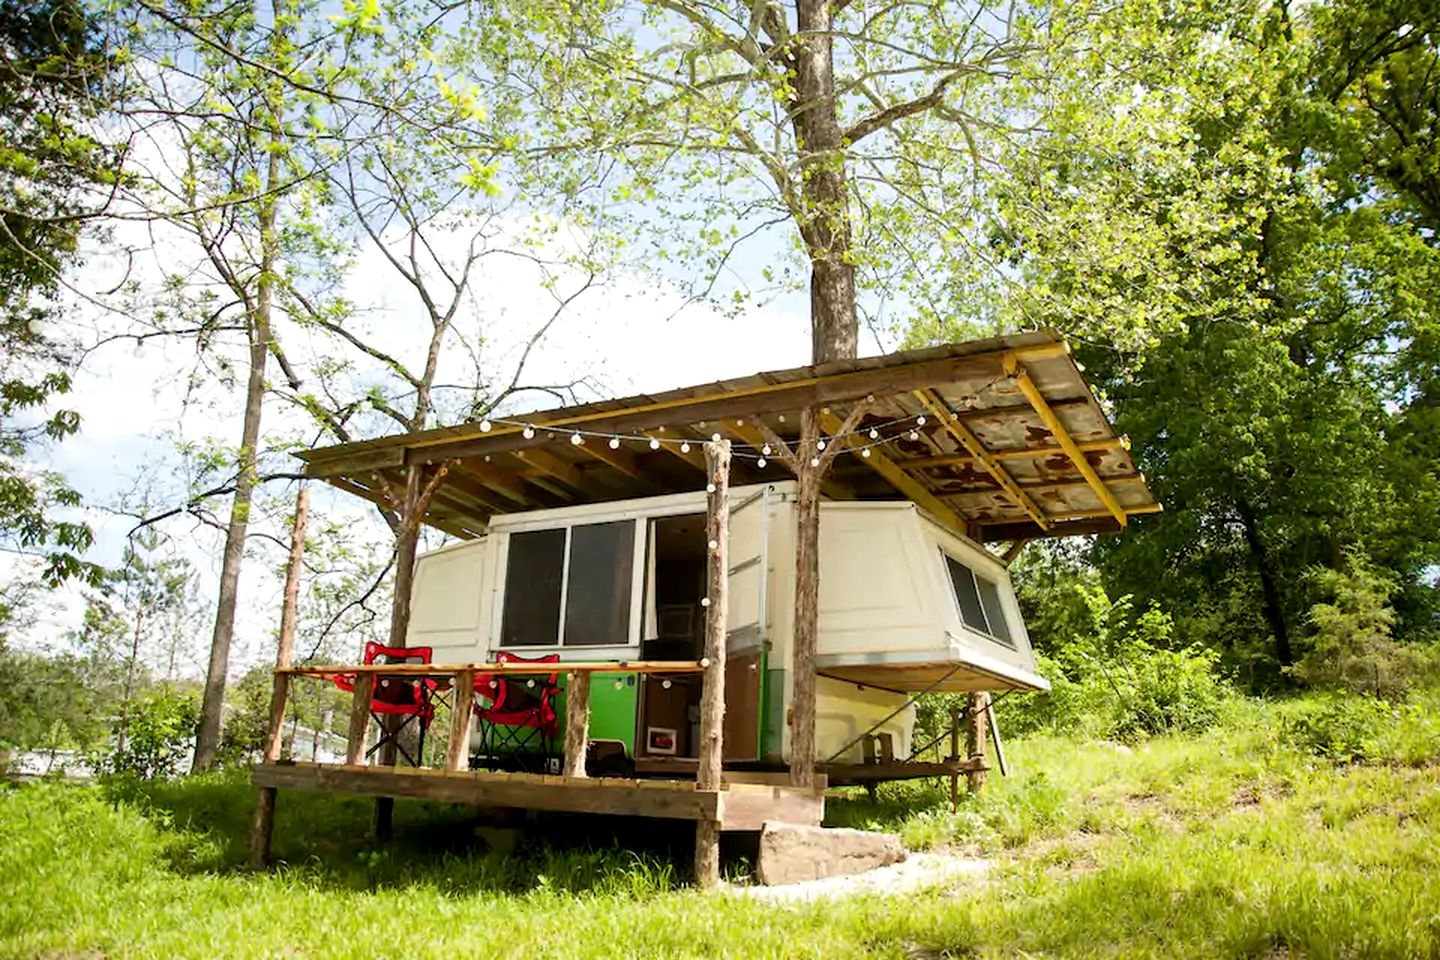 Camper rental for glamping in Missouri